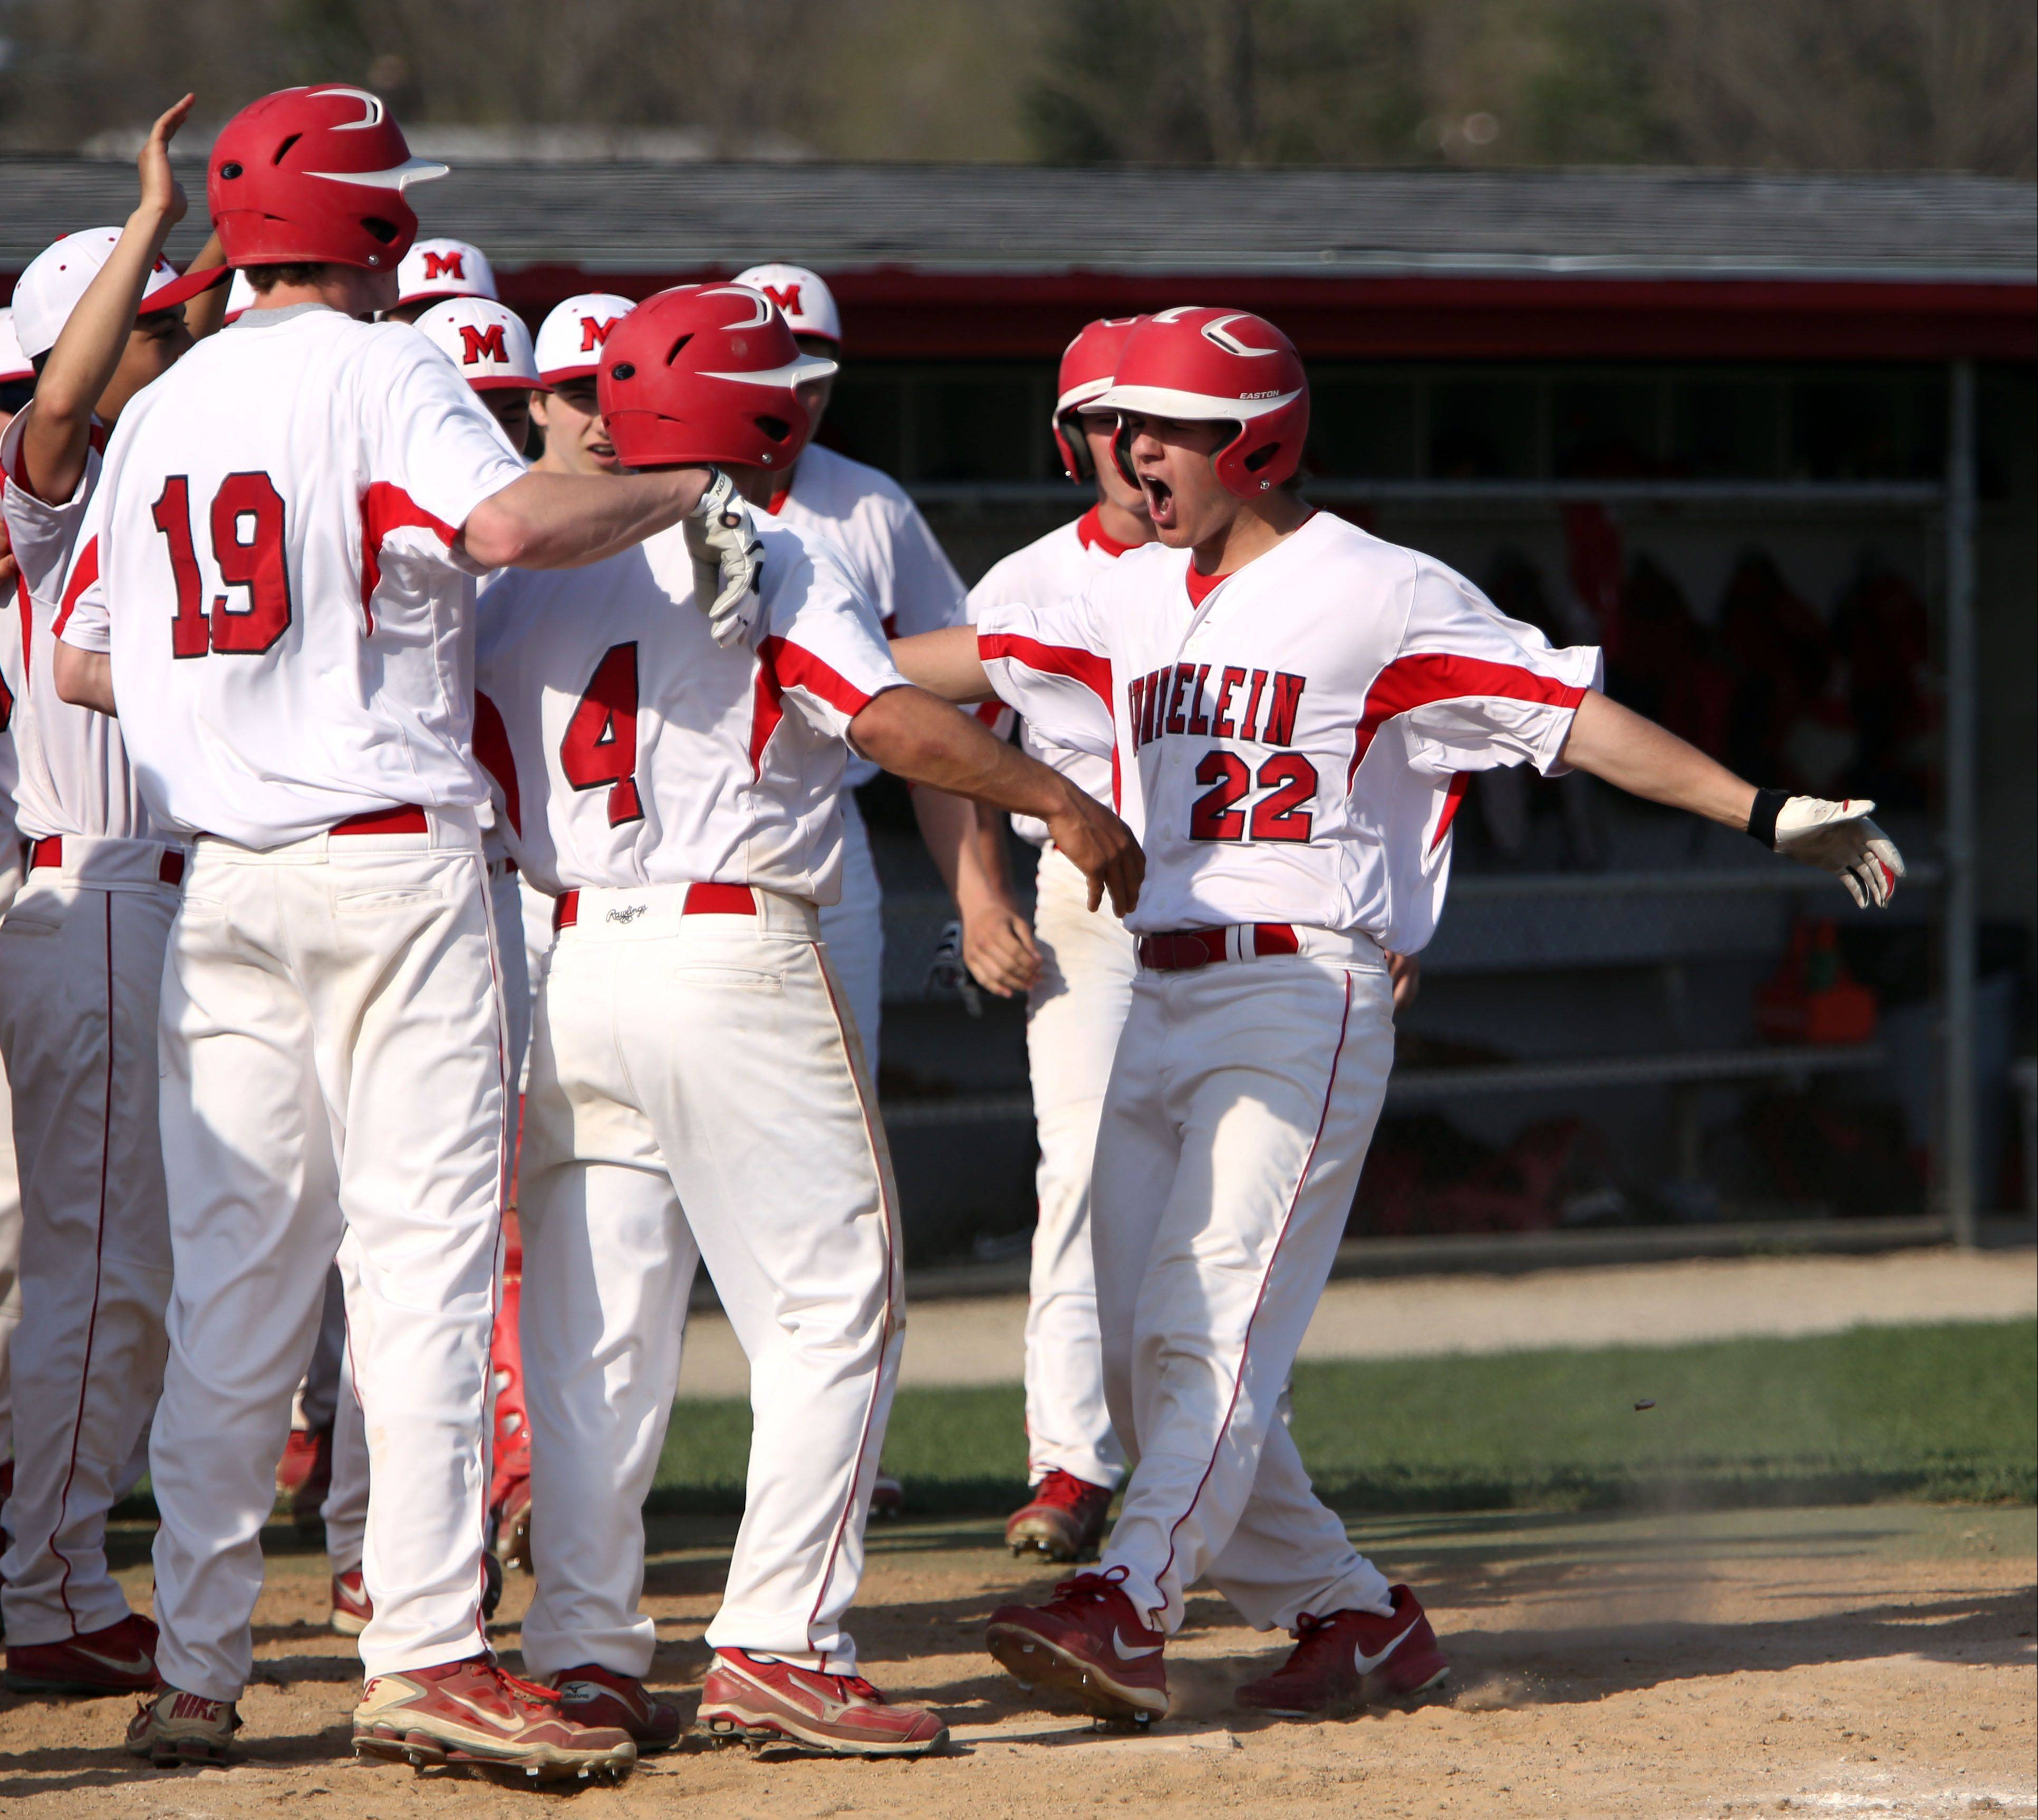 Mundelein�s Will Farmer, right, is met by his teammates as he crosses the plate after a home run against Libertyville on Tuesday at Mundelein.